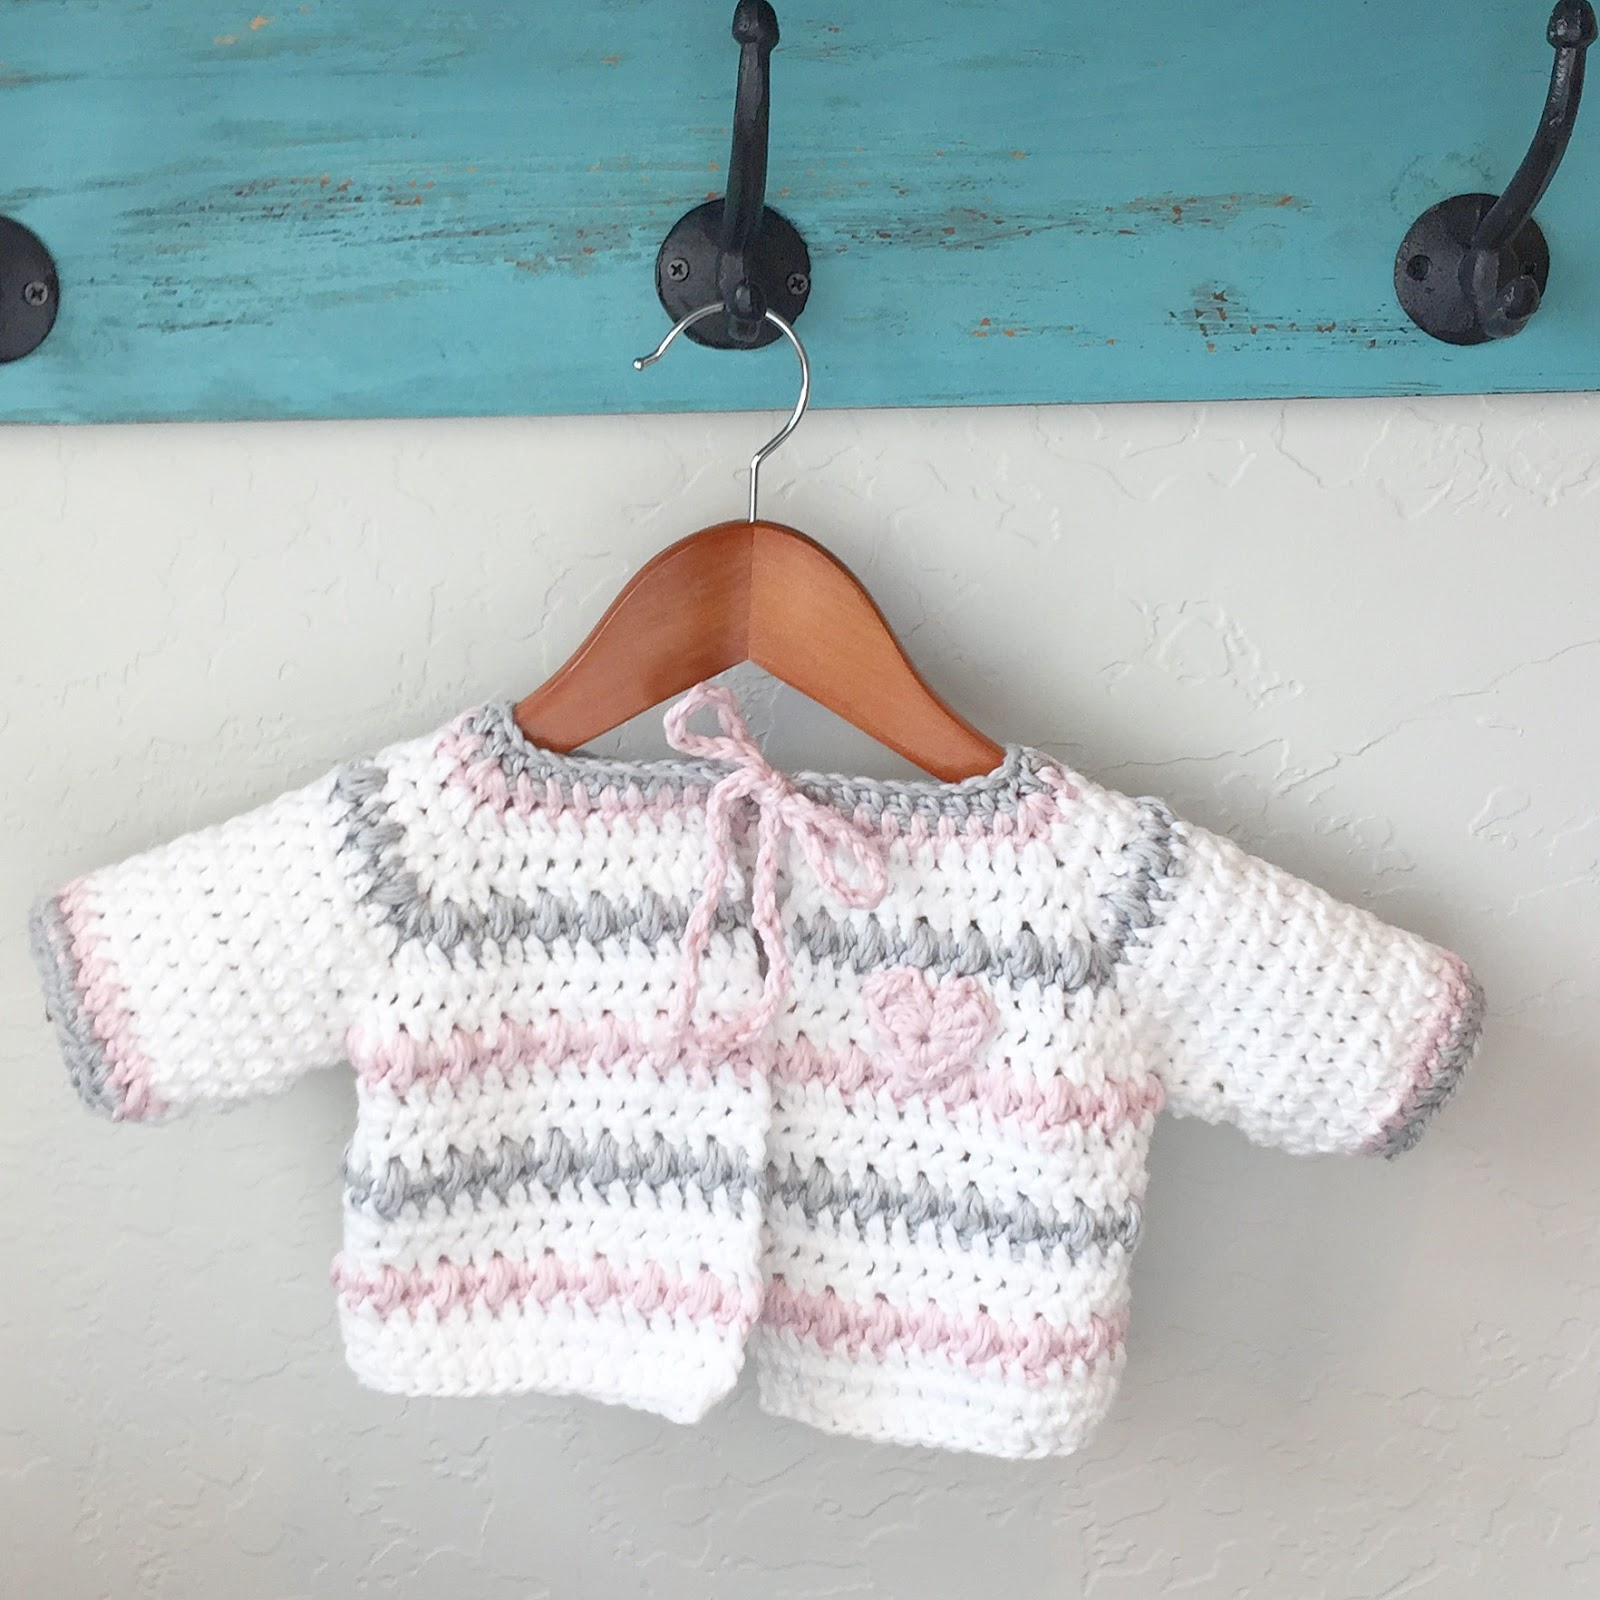 Crochet Baby Sweater in White, Pink and Gray | Daisy Farm Crafts